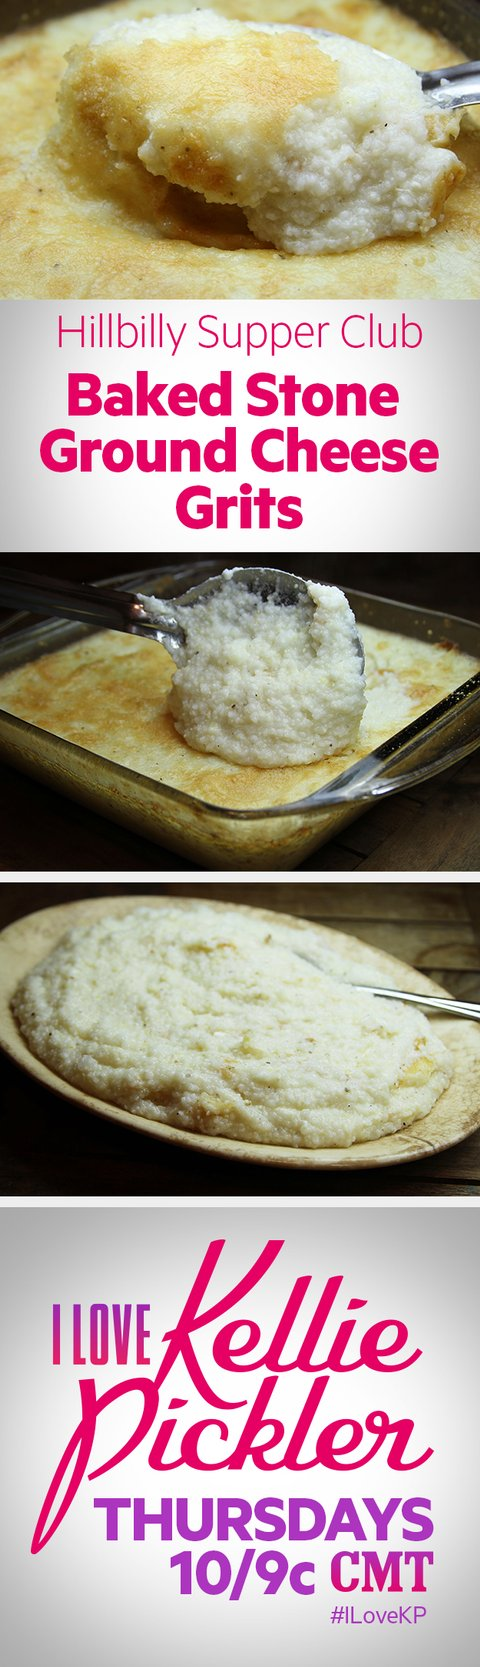 kp_pinterest_cheese_grits